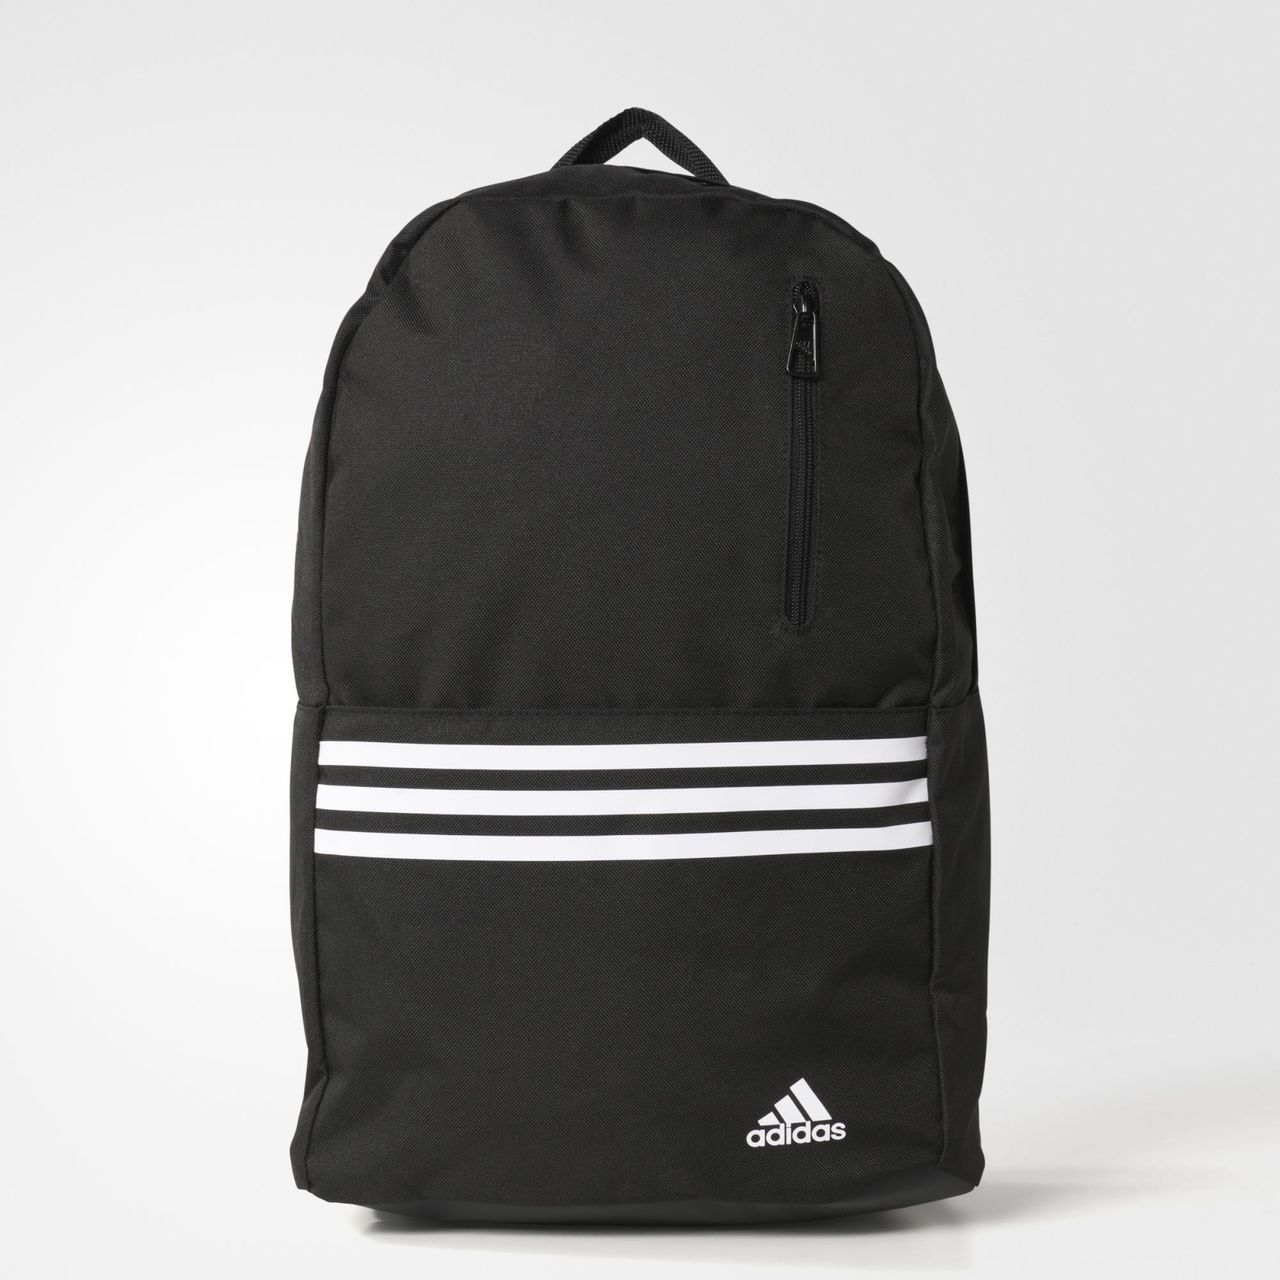 adidas Versatile 3-Stripes Backpack - Blue  b6f311880